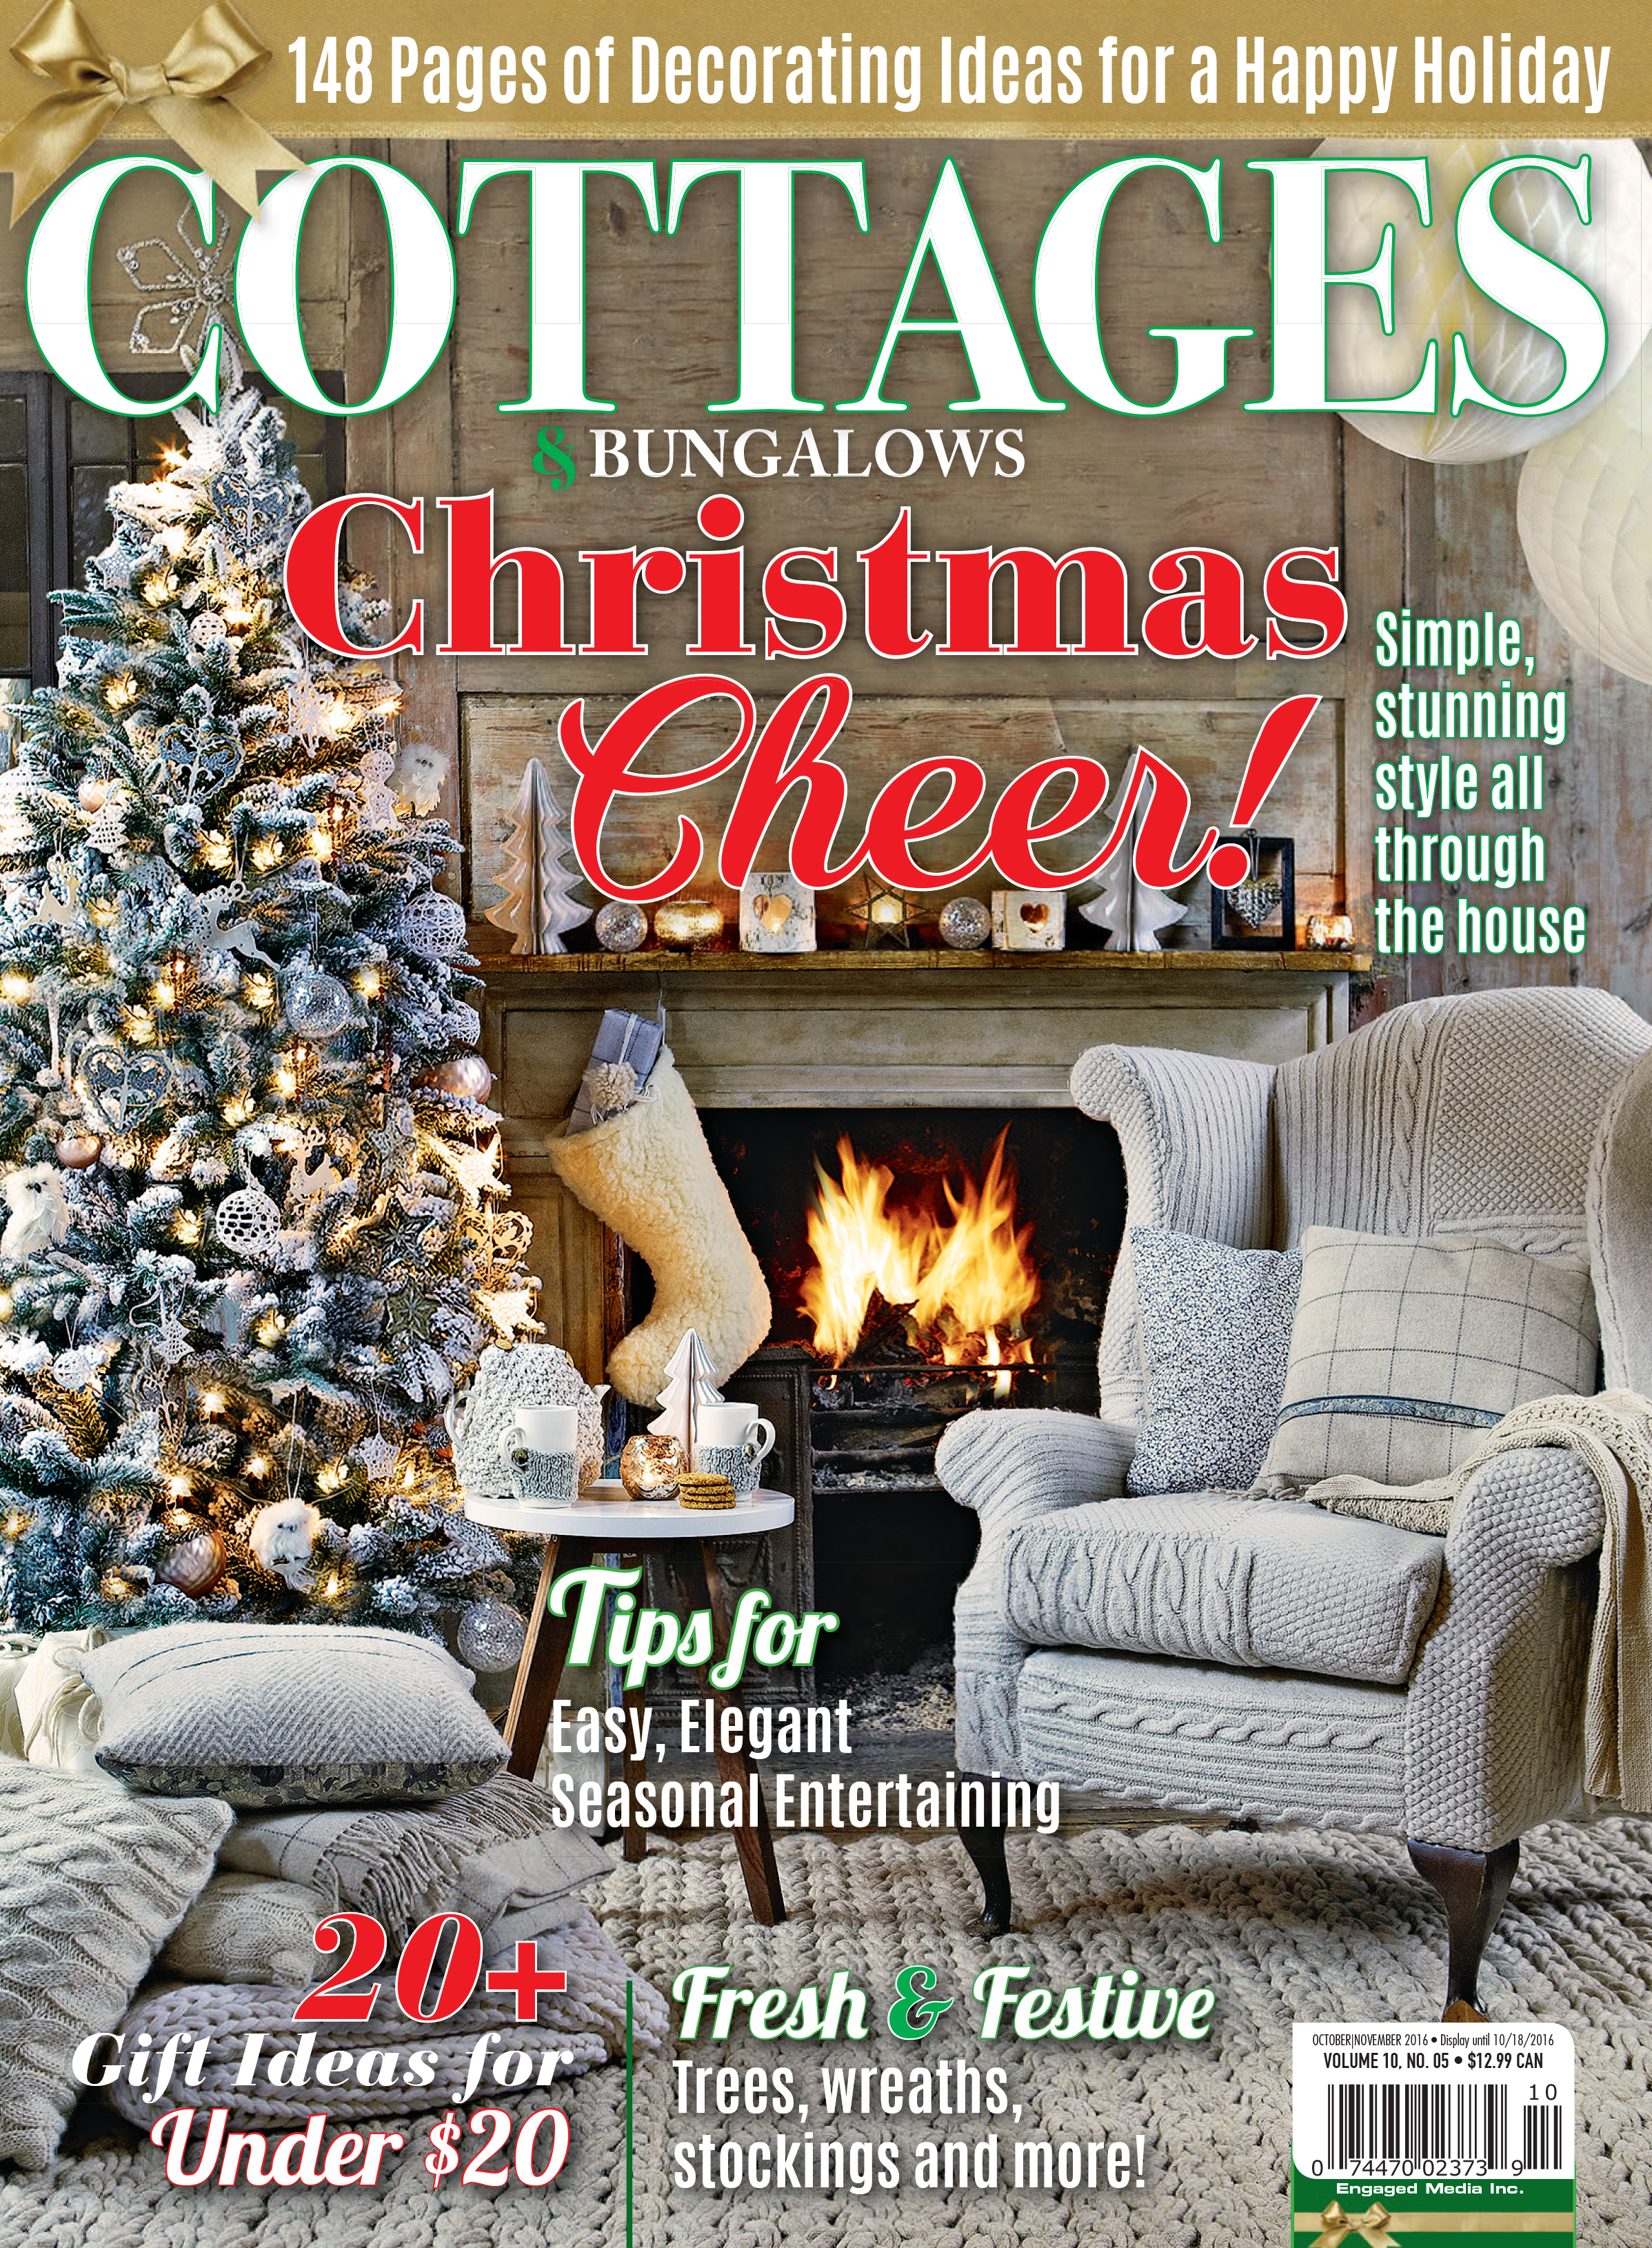 Cottages_Bungalows_Nov_2016_COVER.png